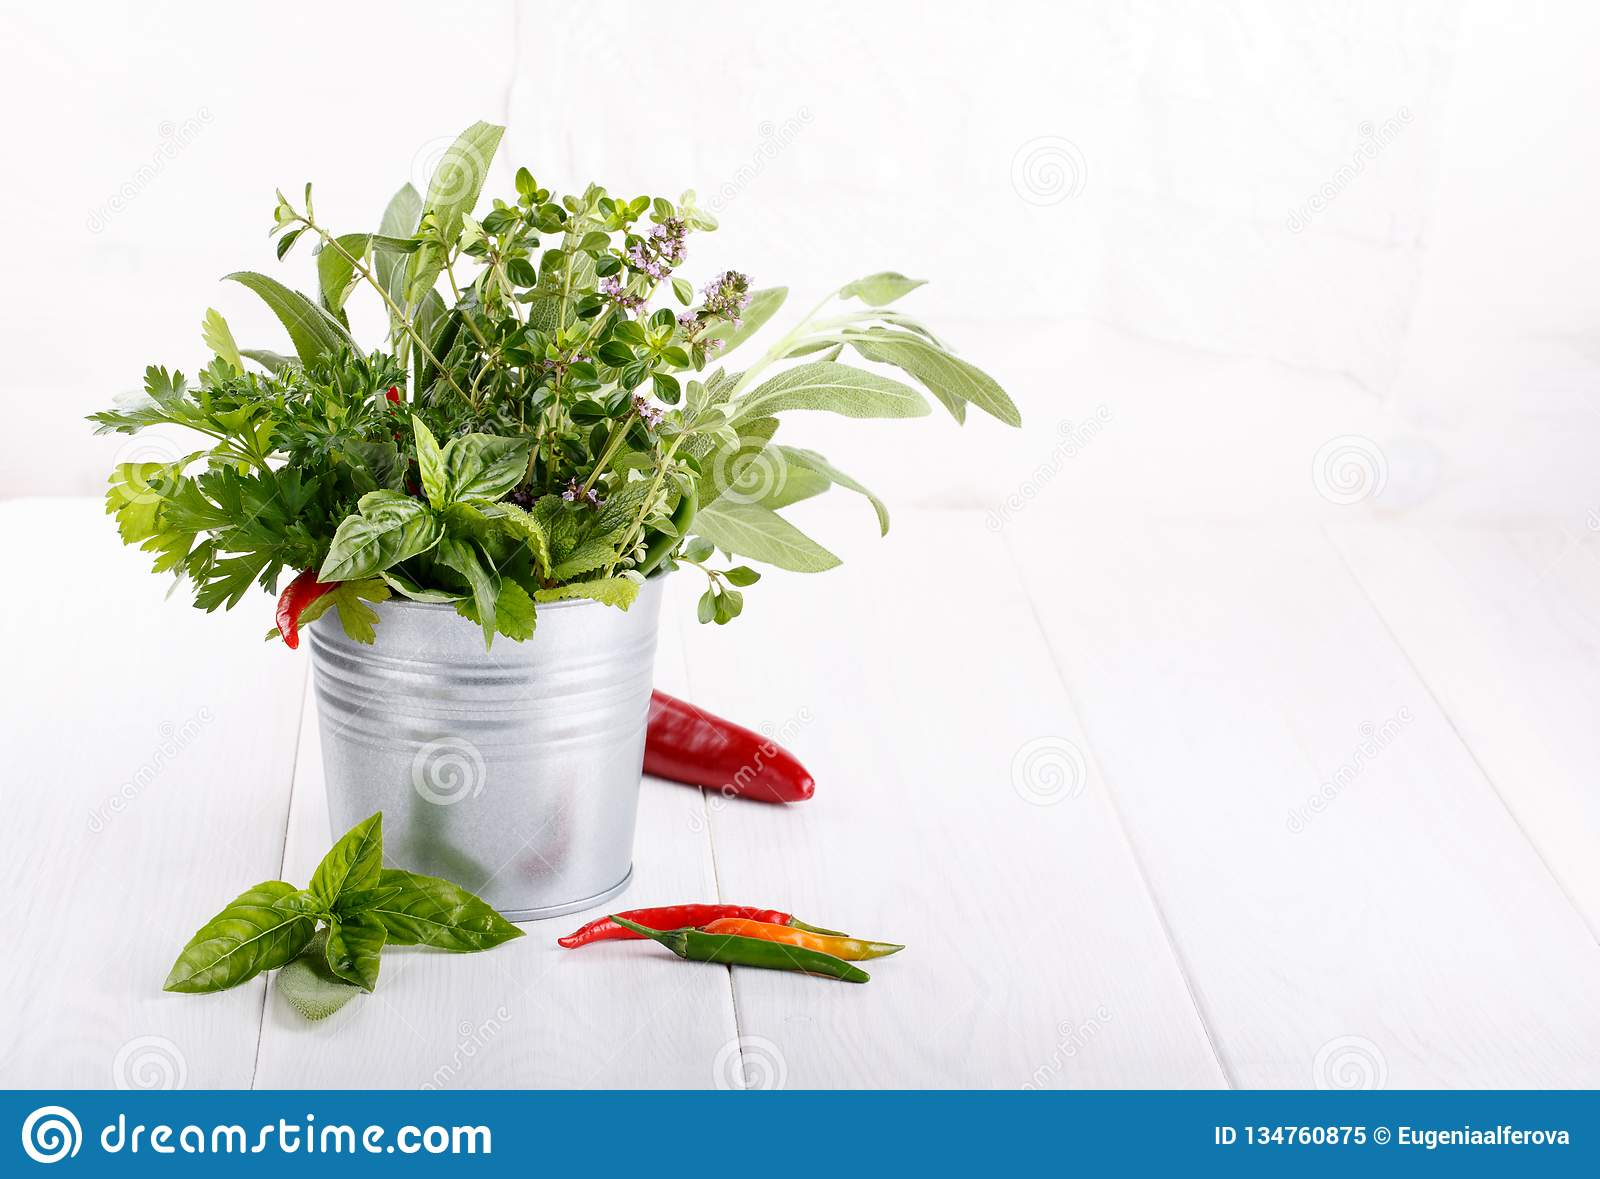 Aromatic herbs and spices from the garden